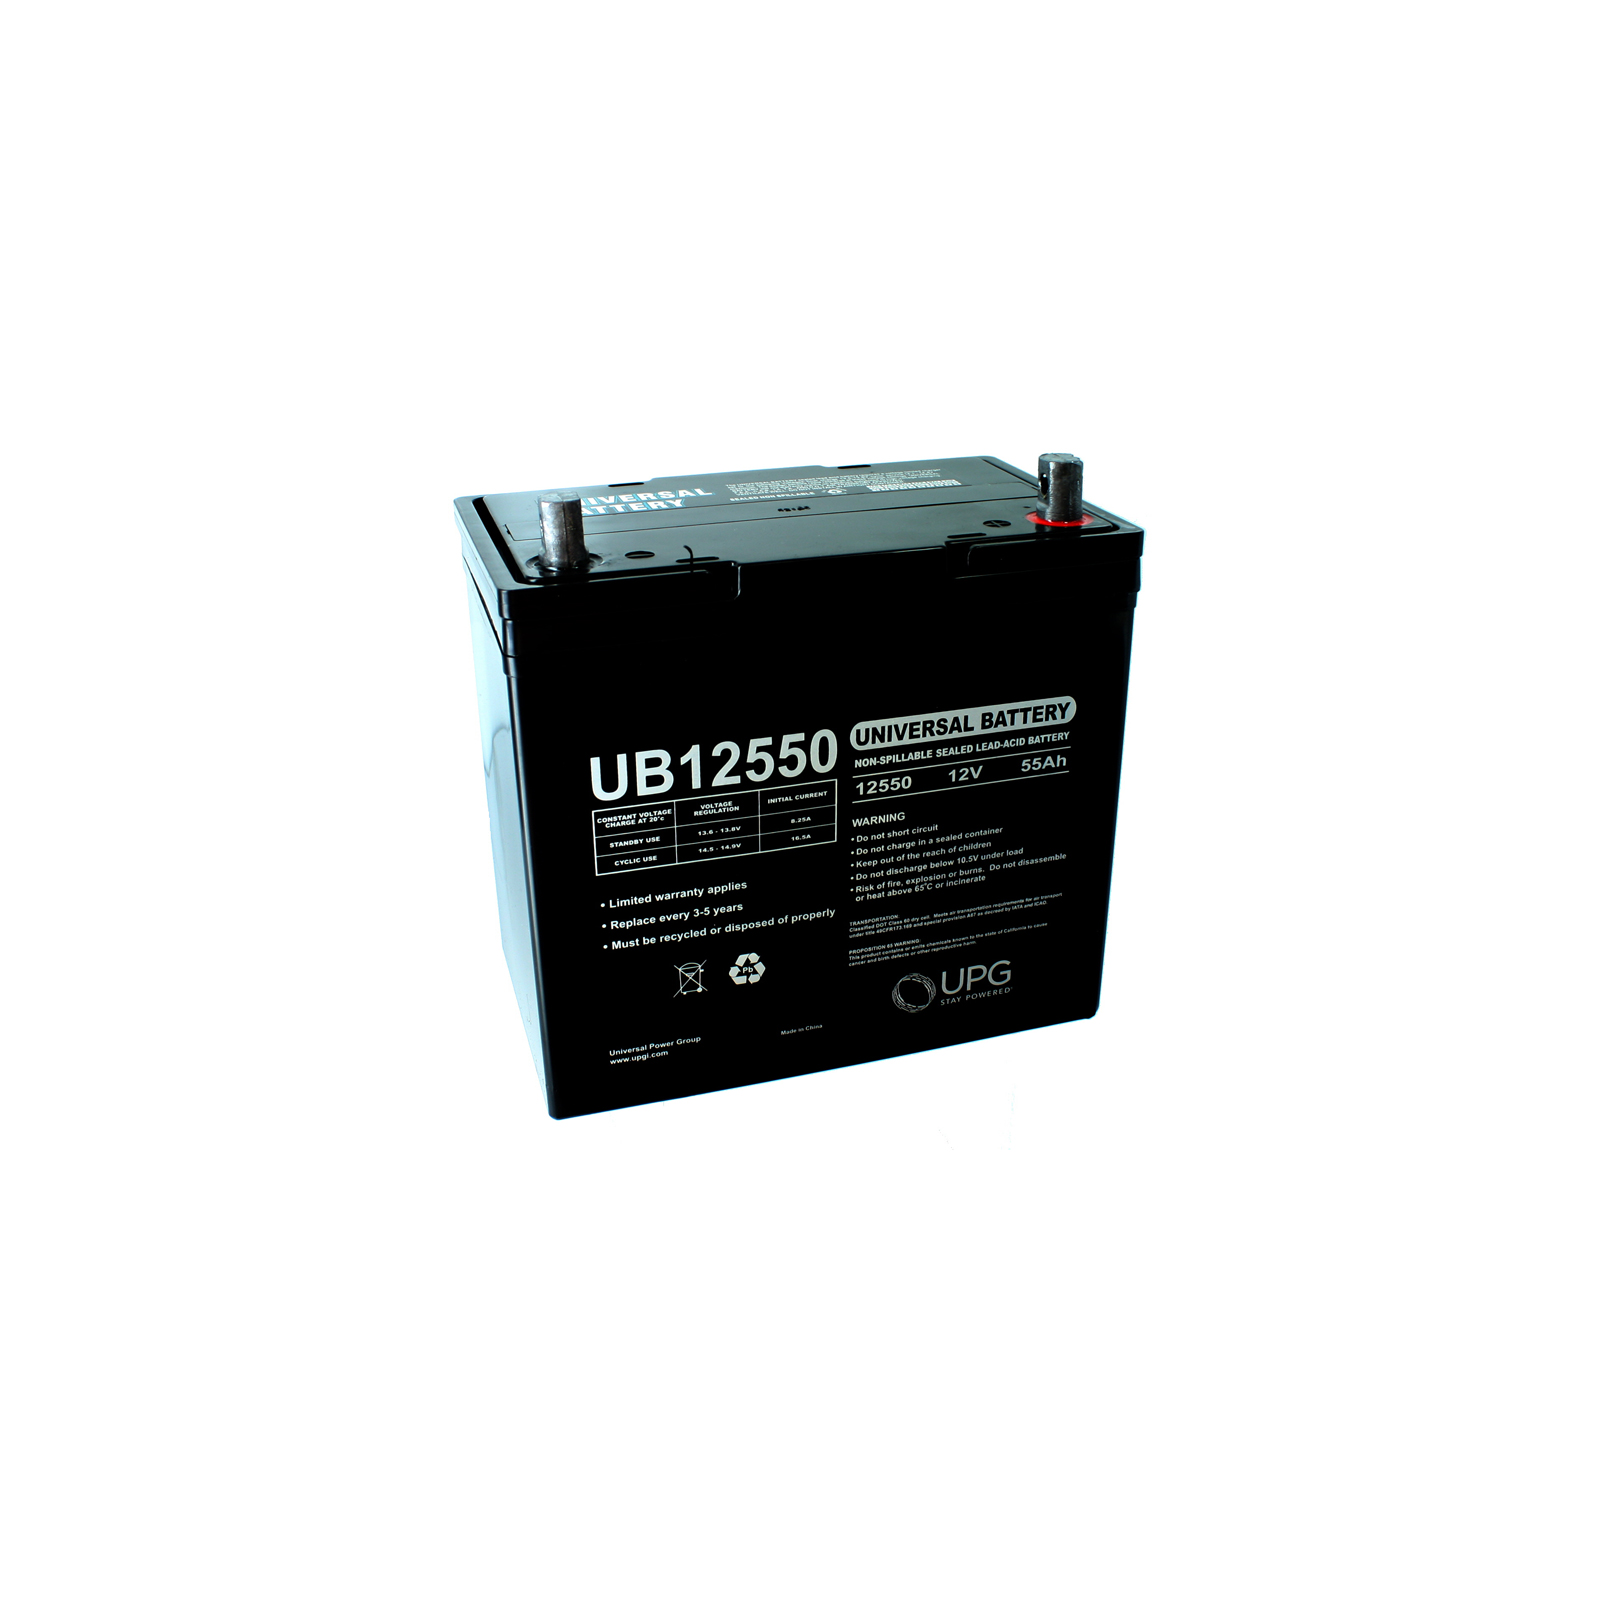 Sealed Battery on 12v 55ah Scooter Battery Ub12550 For Hoveround Teknique   Ebay